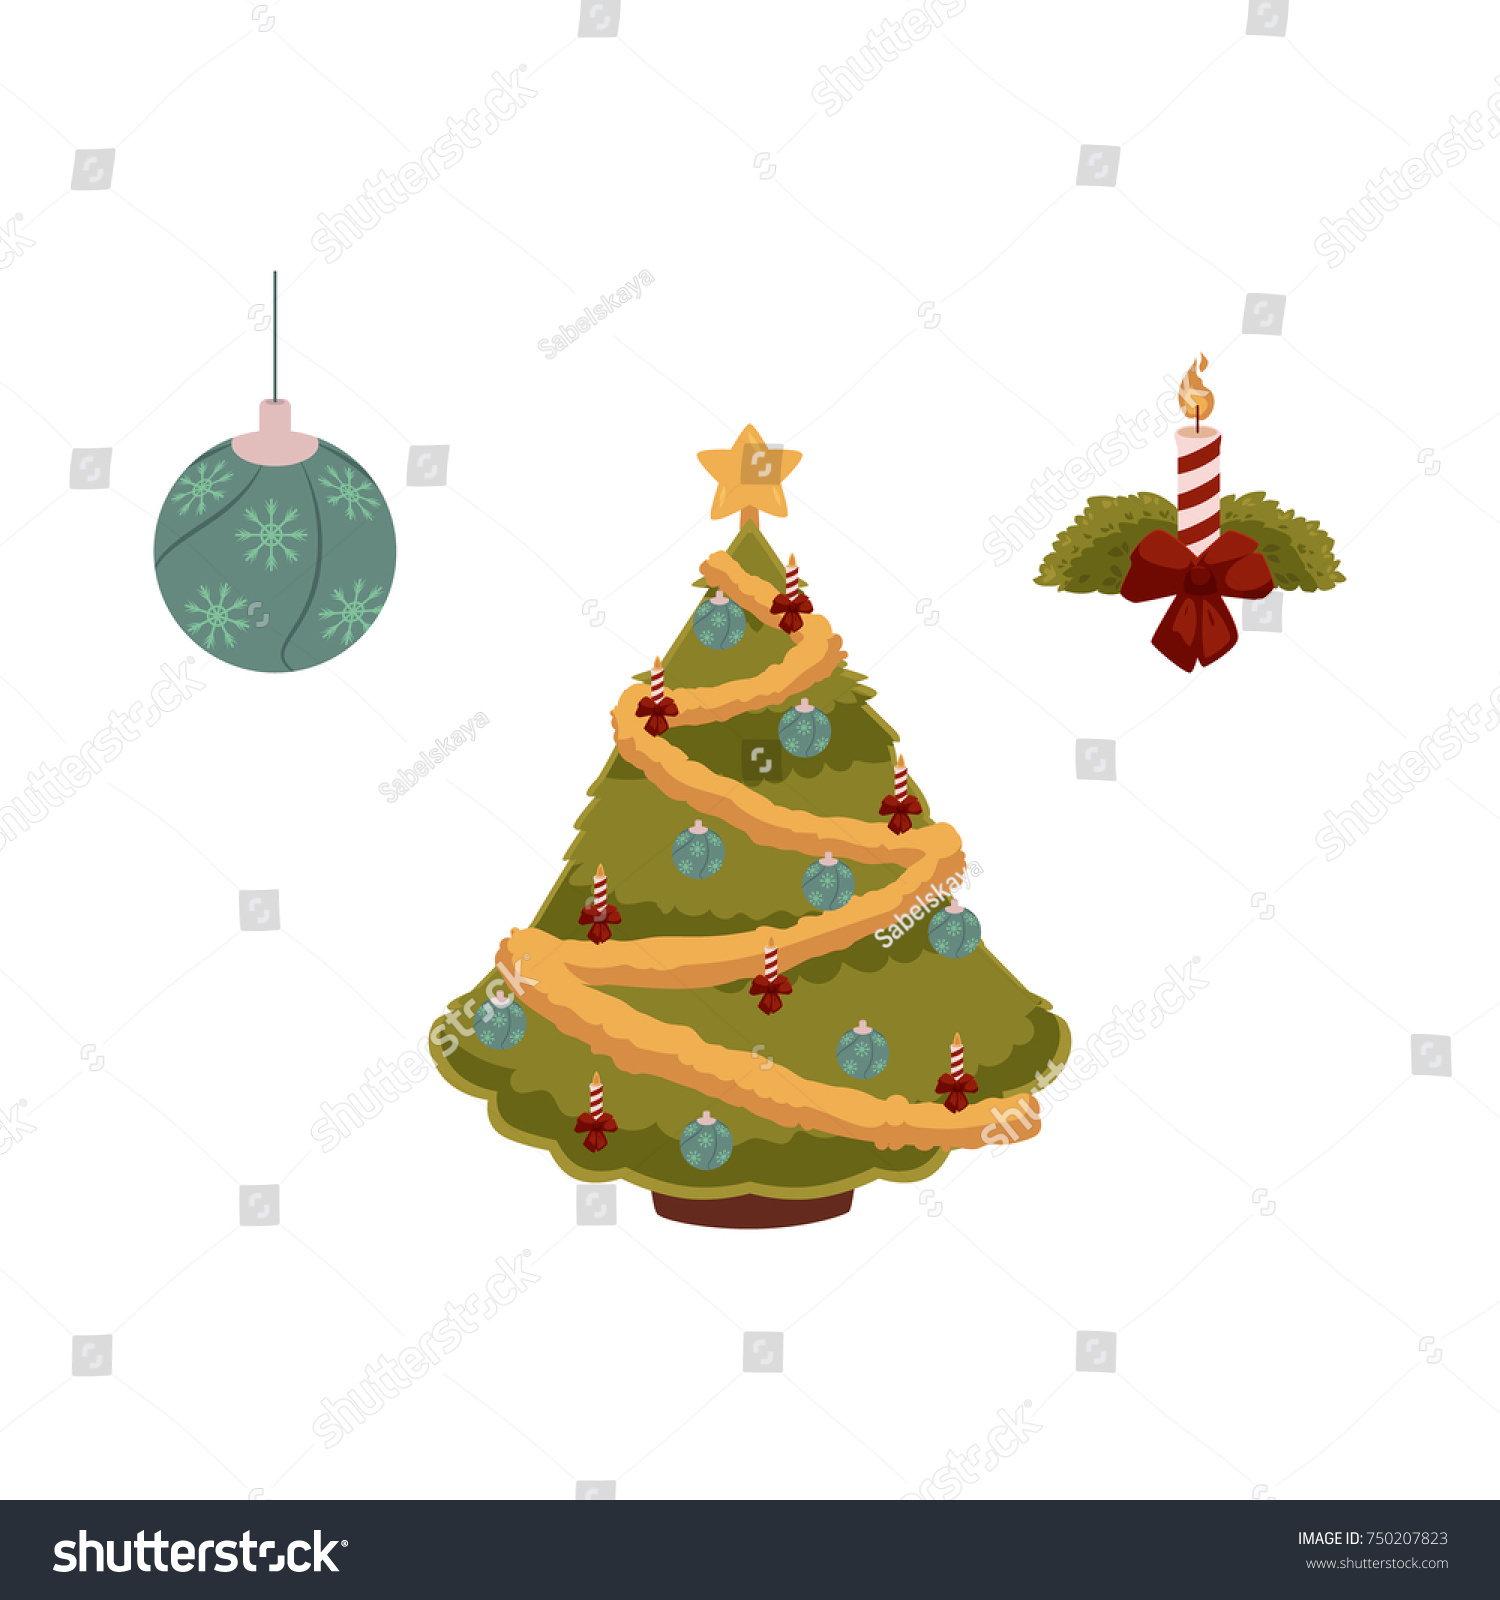 Vector flat christmas holiday new year stock vector 750207823 vector flat christmas holiday new year festive symbols set decorated spruce tree with balls biocorpaavc Image collections